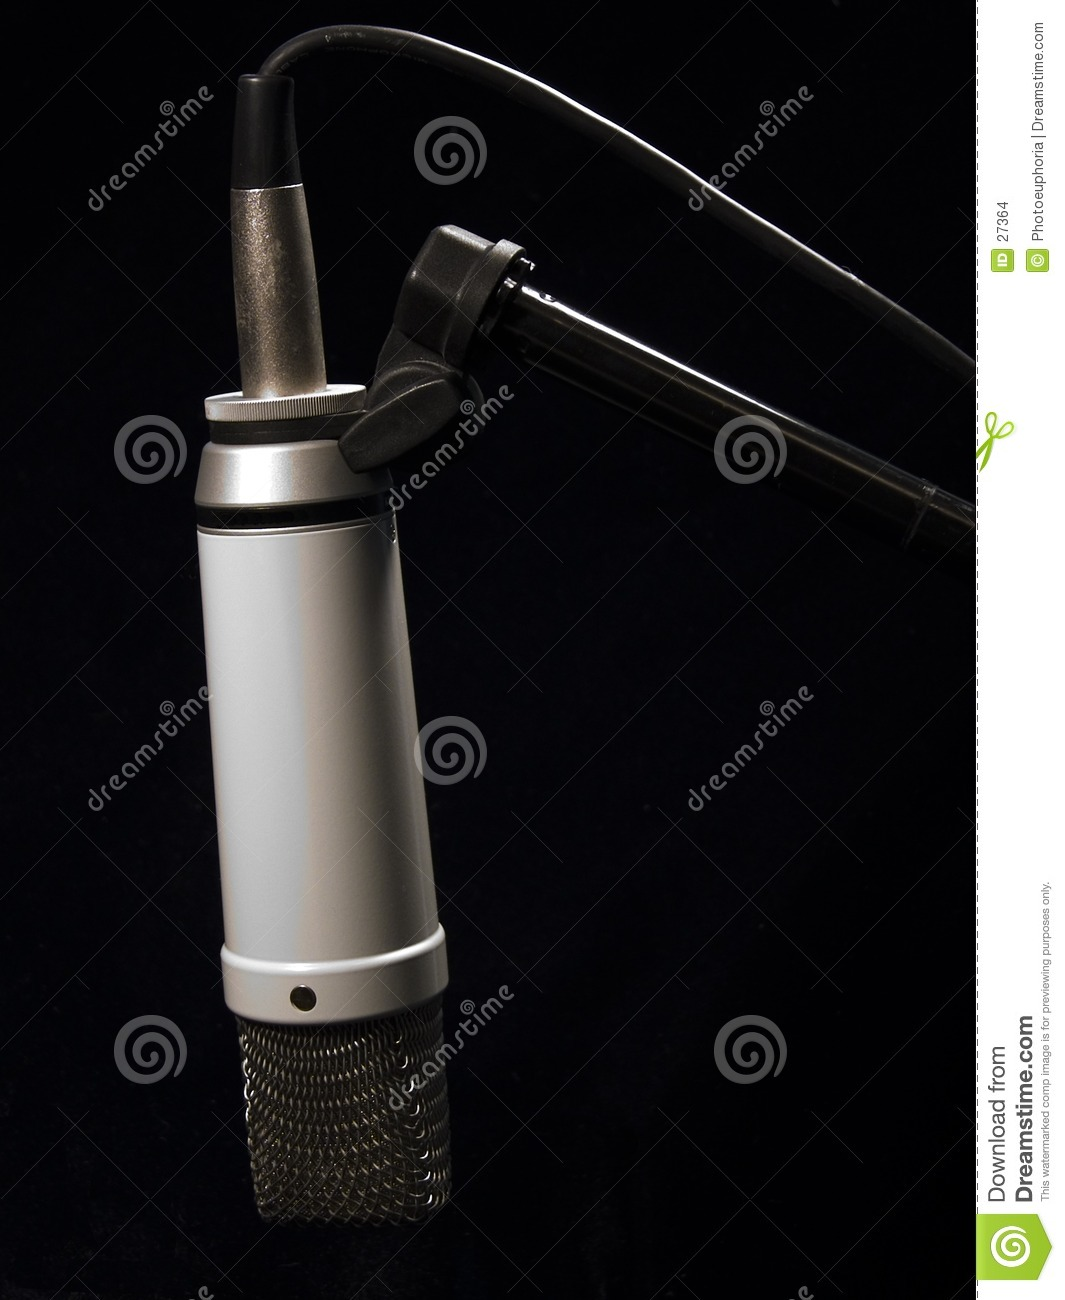 Download Music: Studio Mic on Stand stock photo. Image of enregistrent - 27364